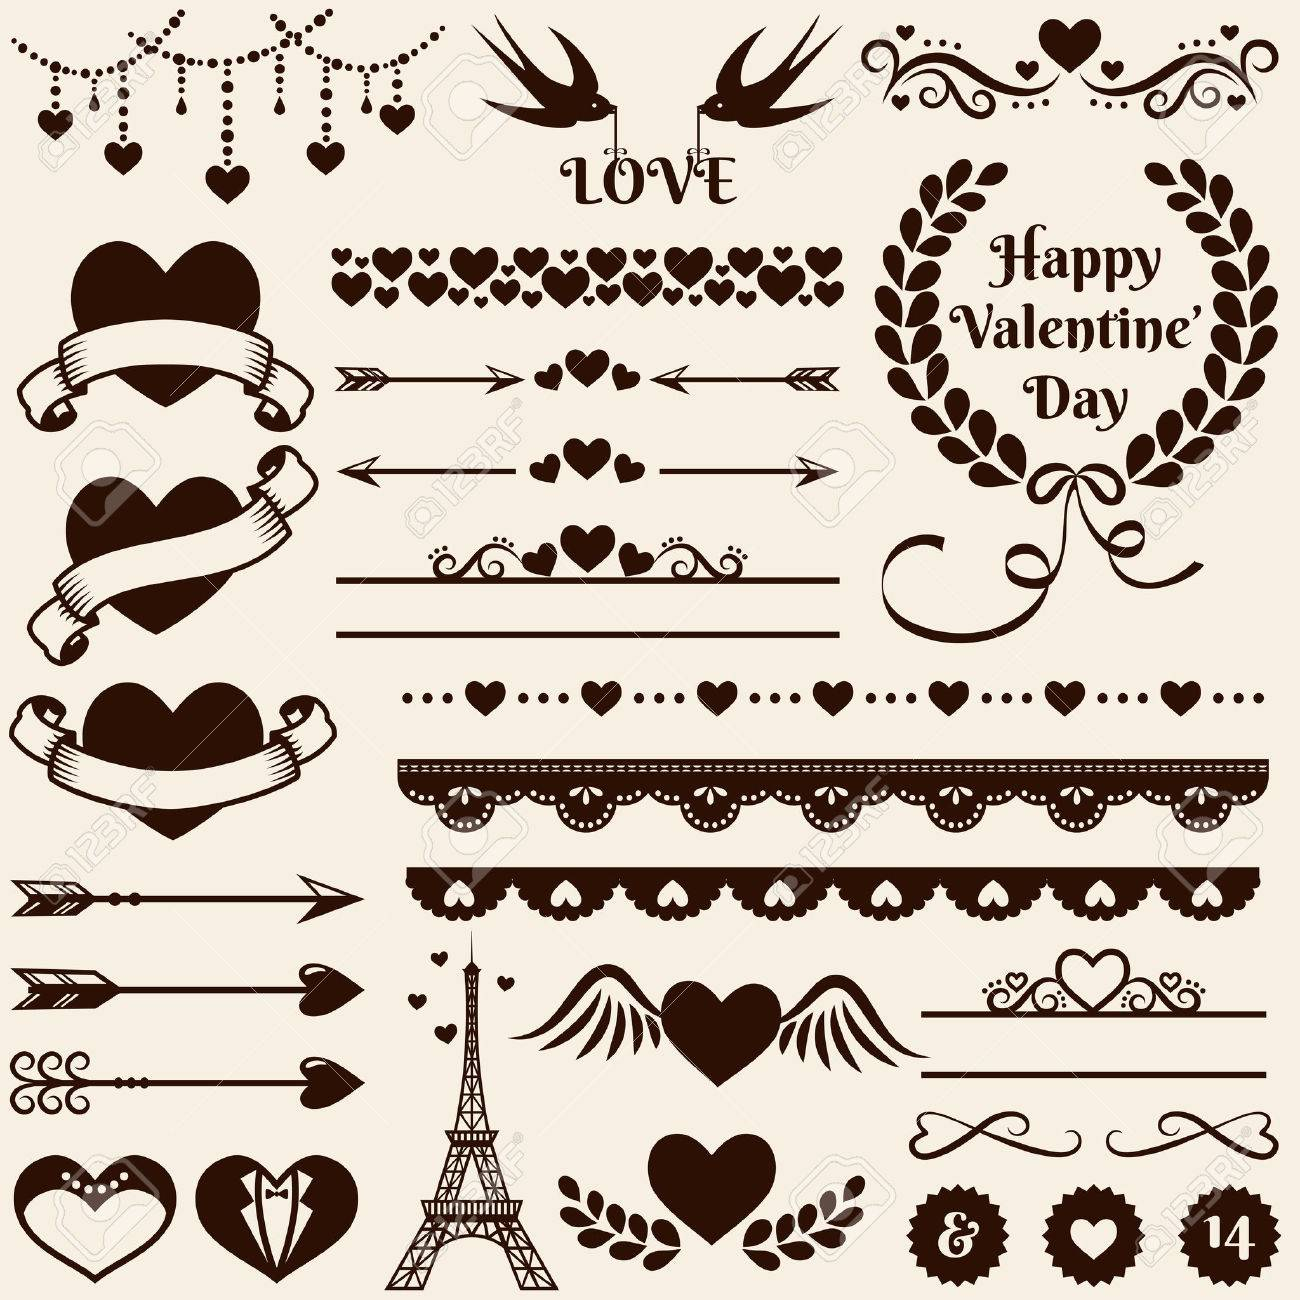 Love, romance and wedding decorations set. Collection of elements for valentine's greeting cards, wedding invitations, page and website decor or any other romantic design. Vector illustration. - 49905863